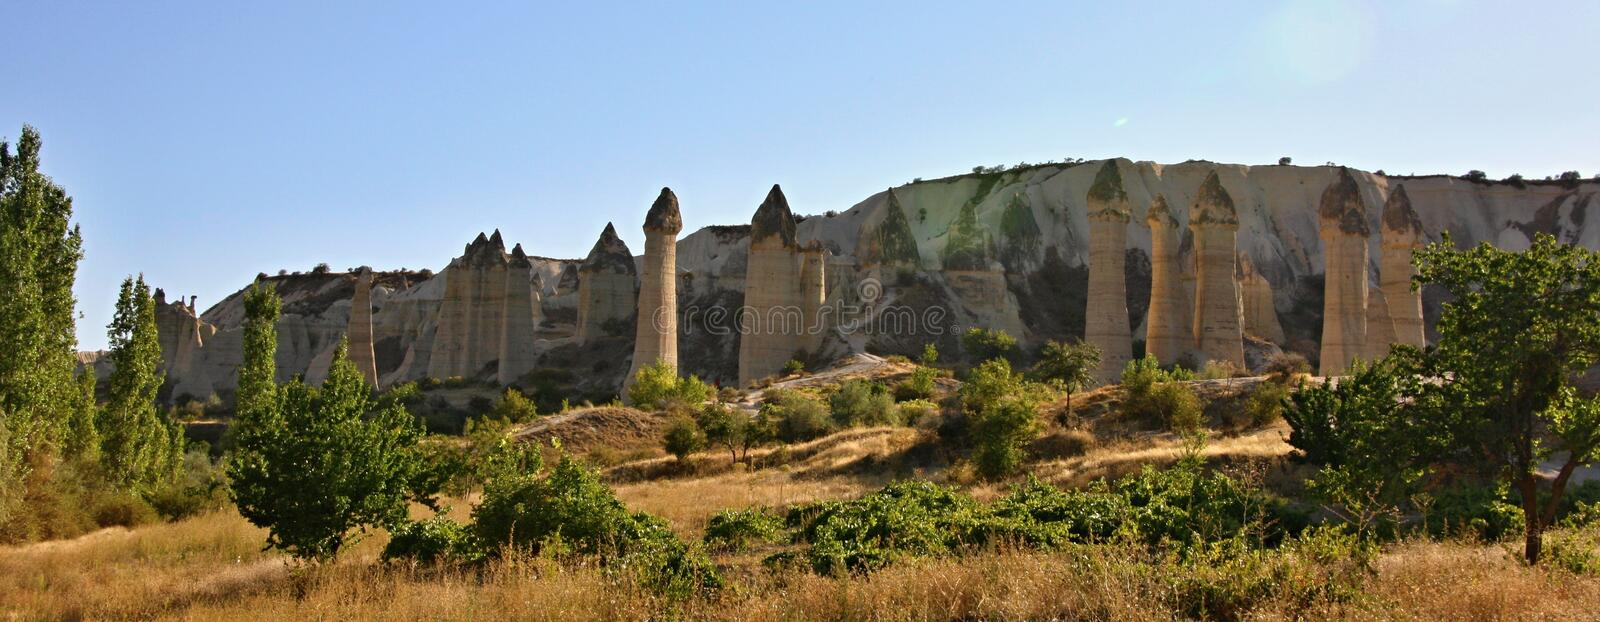 Cappadocia, Steenkolommen in Gorcelid-Vallei stock foto